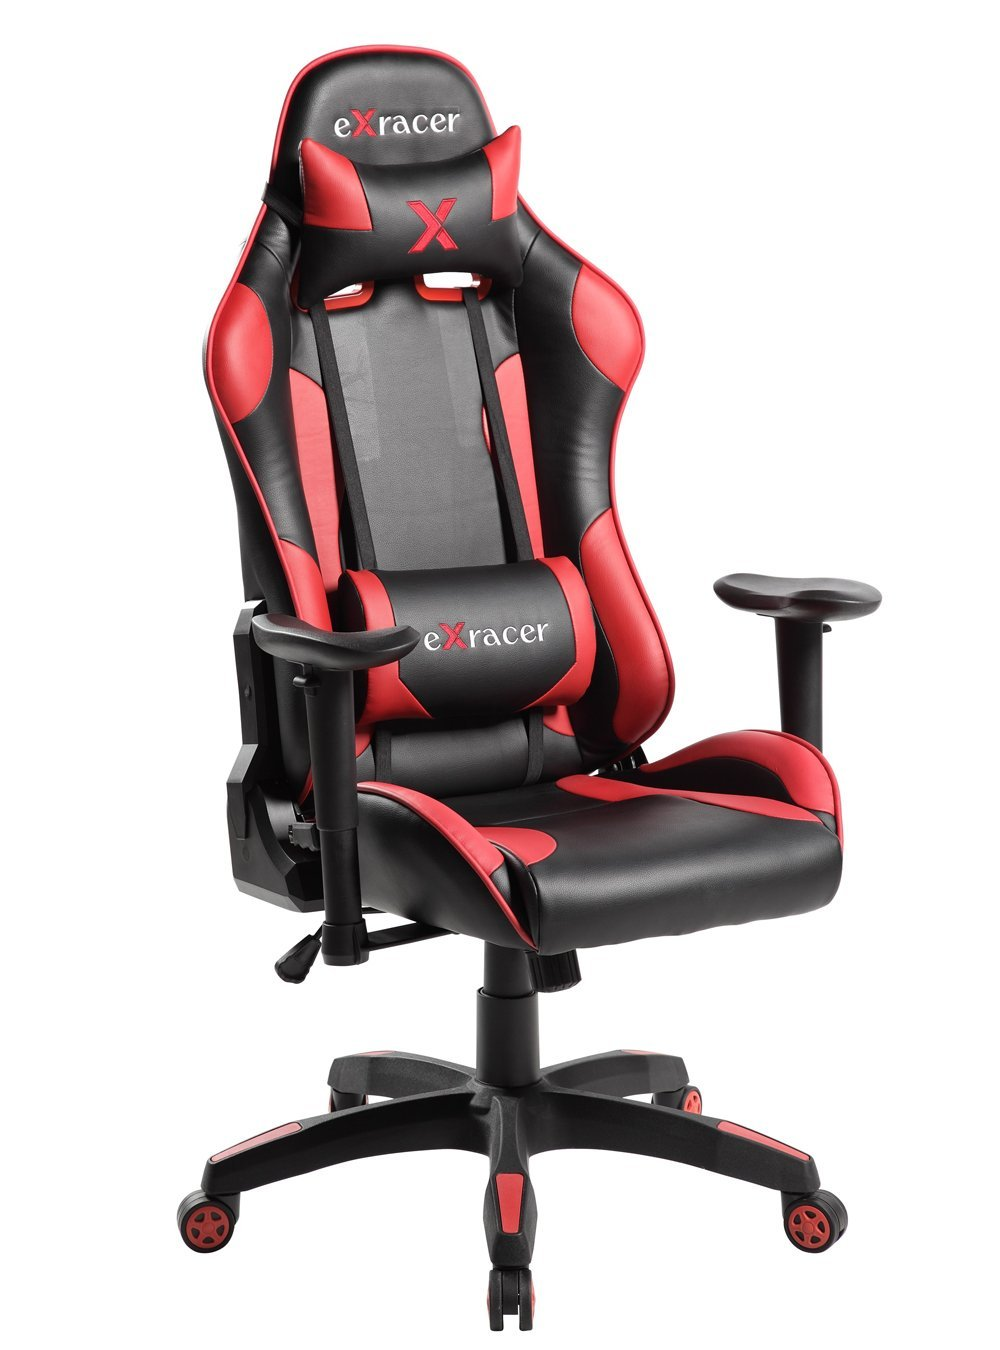 Gaming Chair, Large Size Racing Chair, Racing Style High-back Office Chair, Executive Swivel Ergonomic Computer Chair Leather Chair Cushion Headrest Lumbar Support By Anji Modern Furniture (Red)